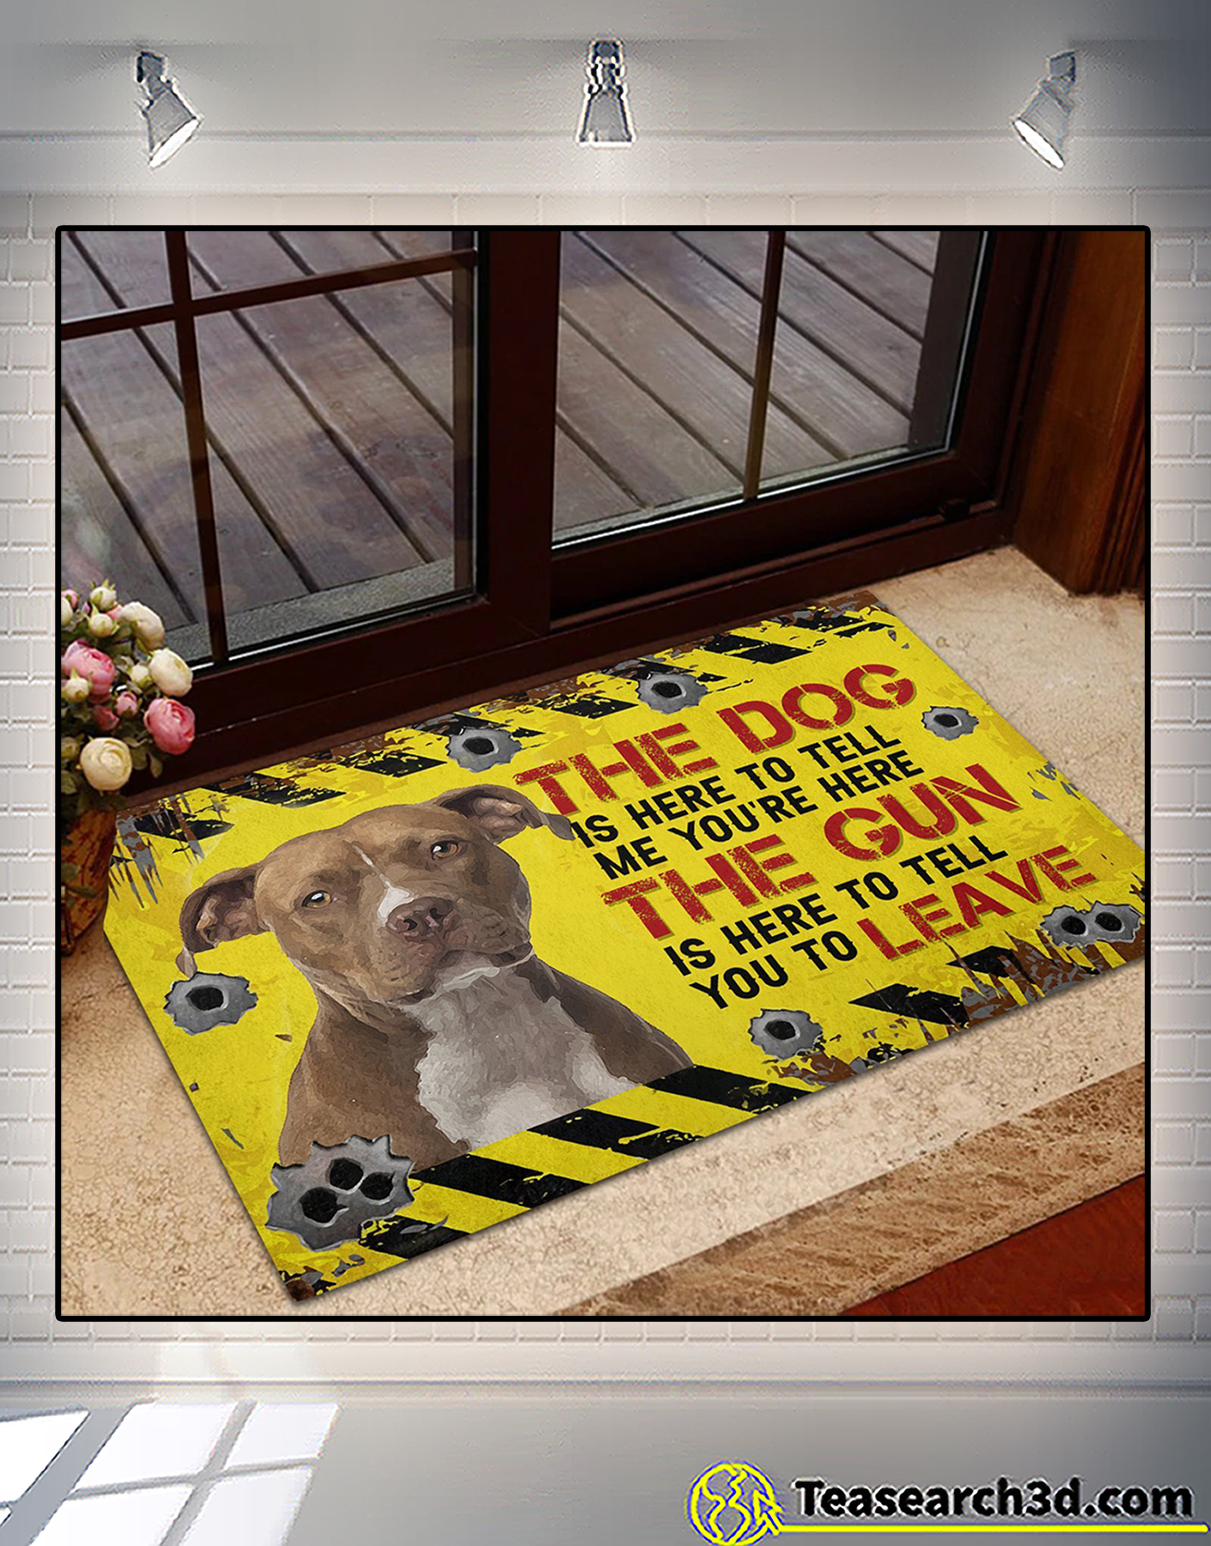 Pitbull The dog is here to tell me you're here doormat 2